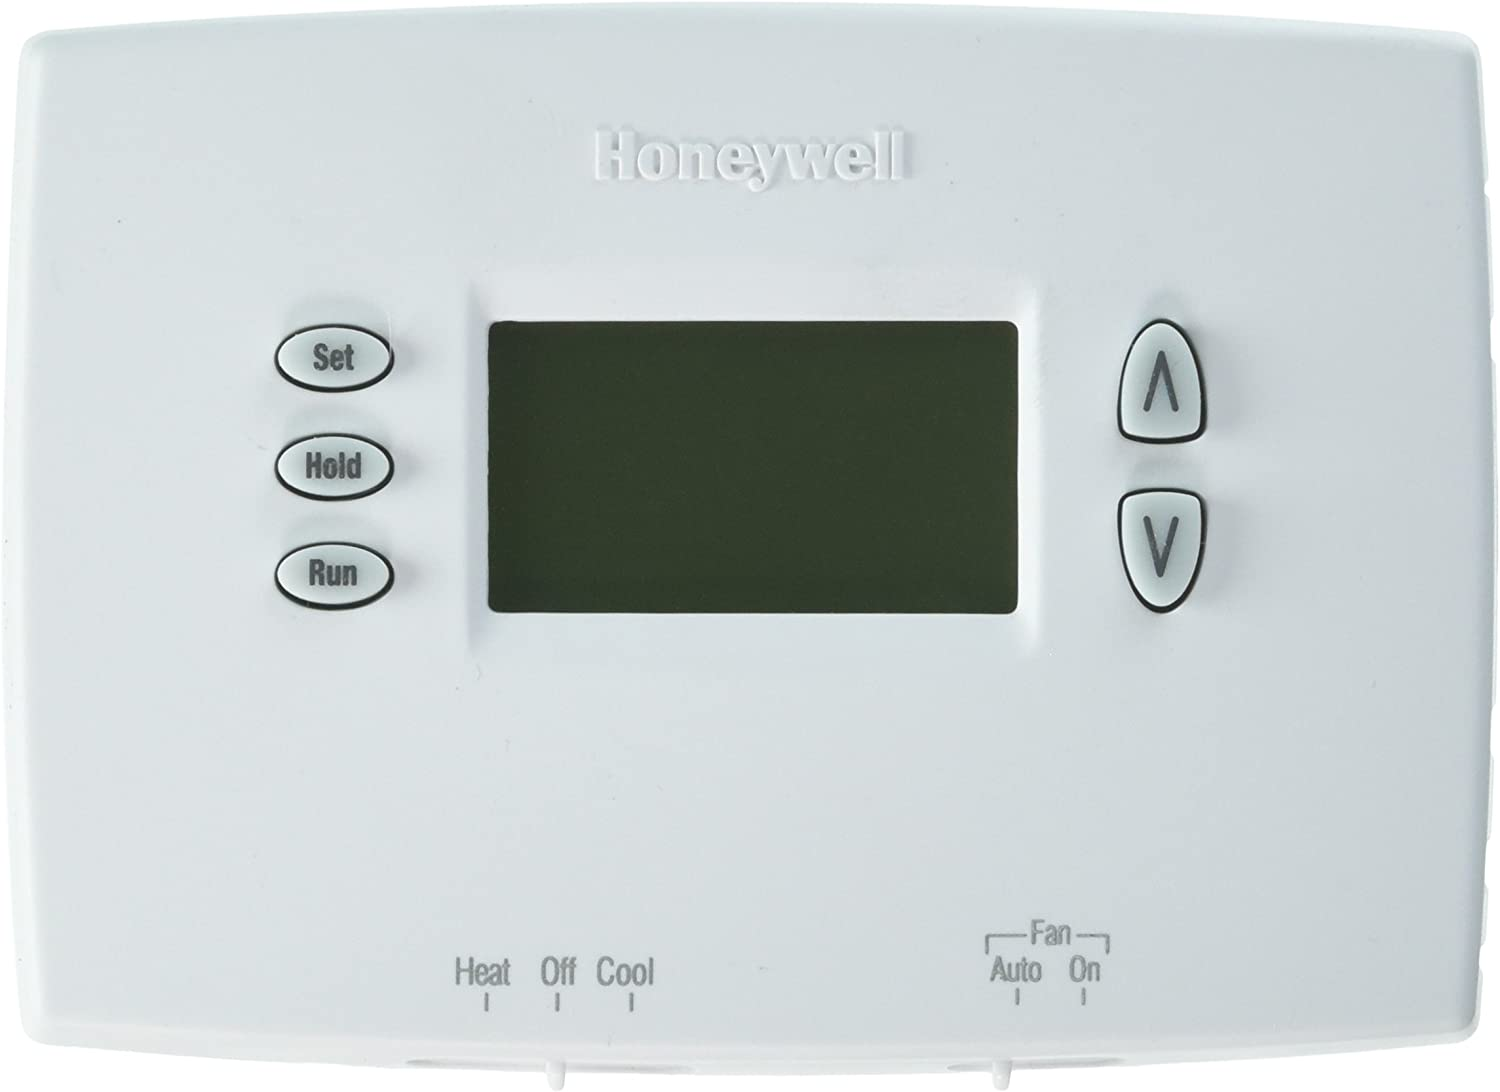 Charlotte Mall Honeywell Home 1-Week Rapid rise Everyday Thermostat RTHL221B1 Programmable